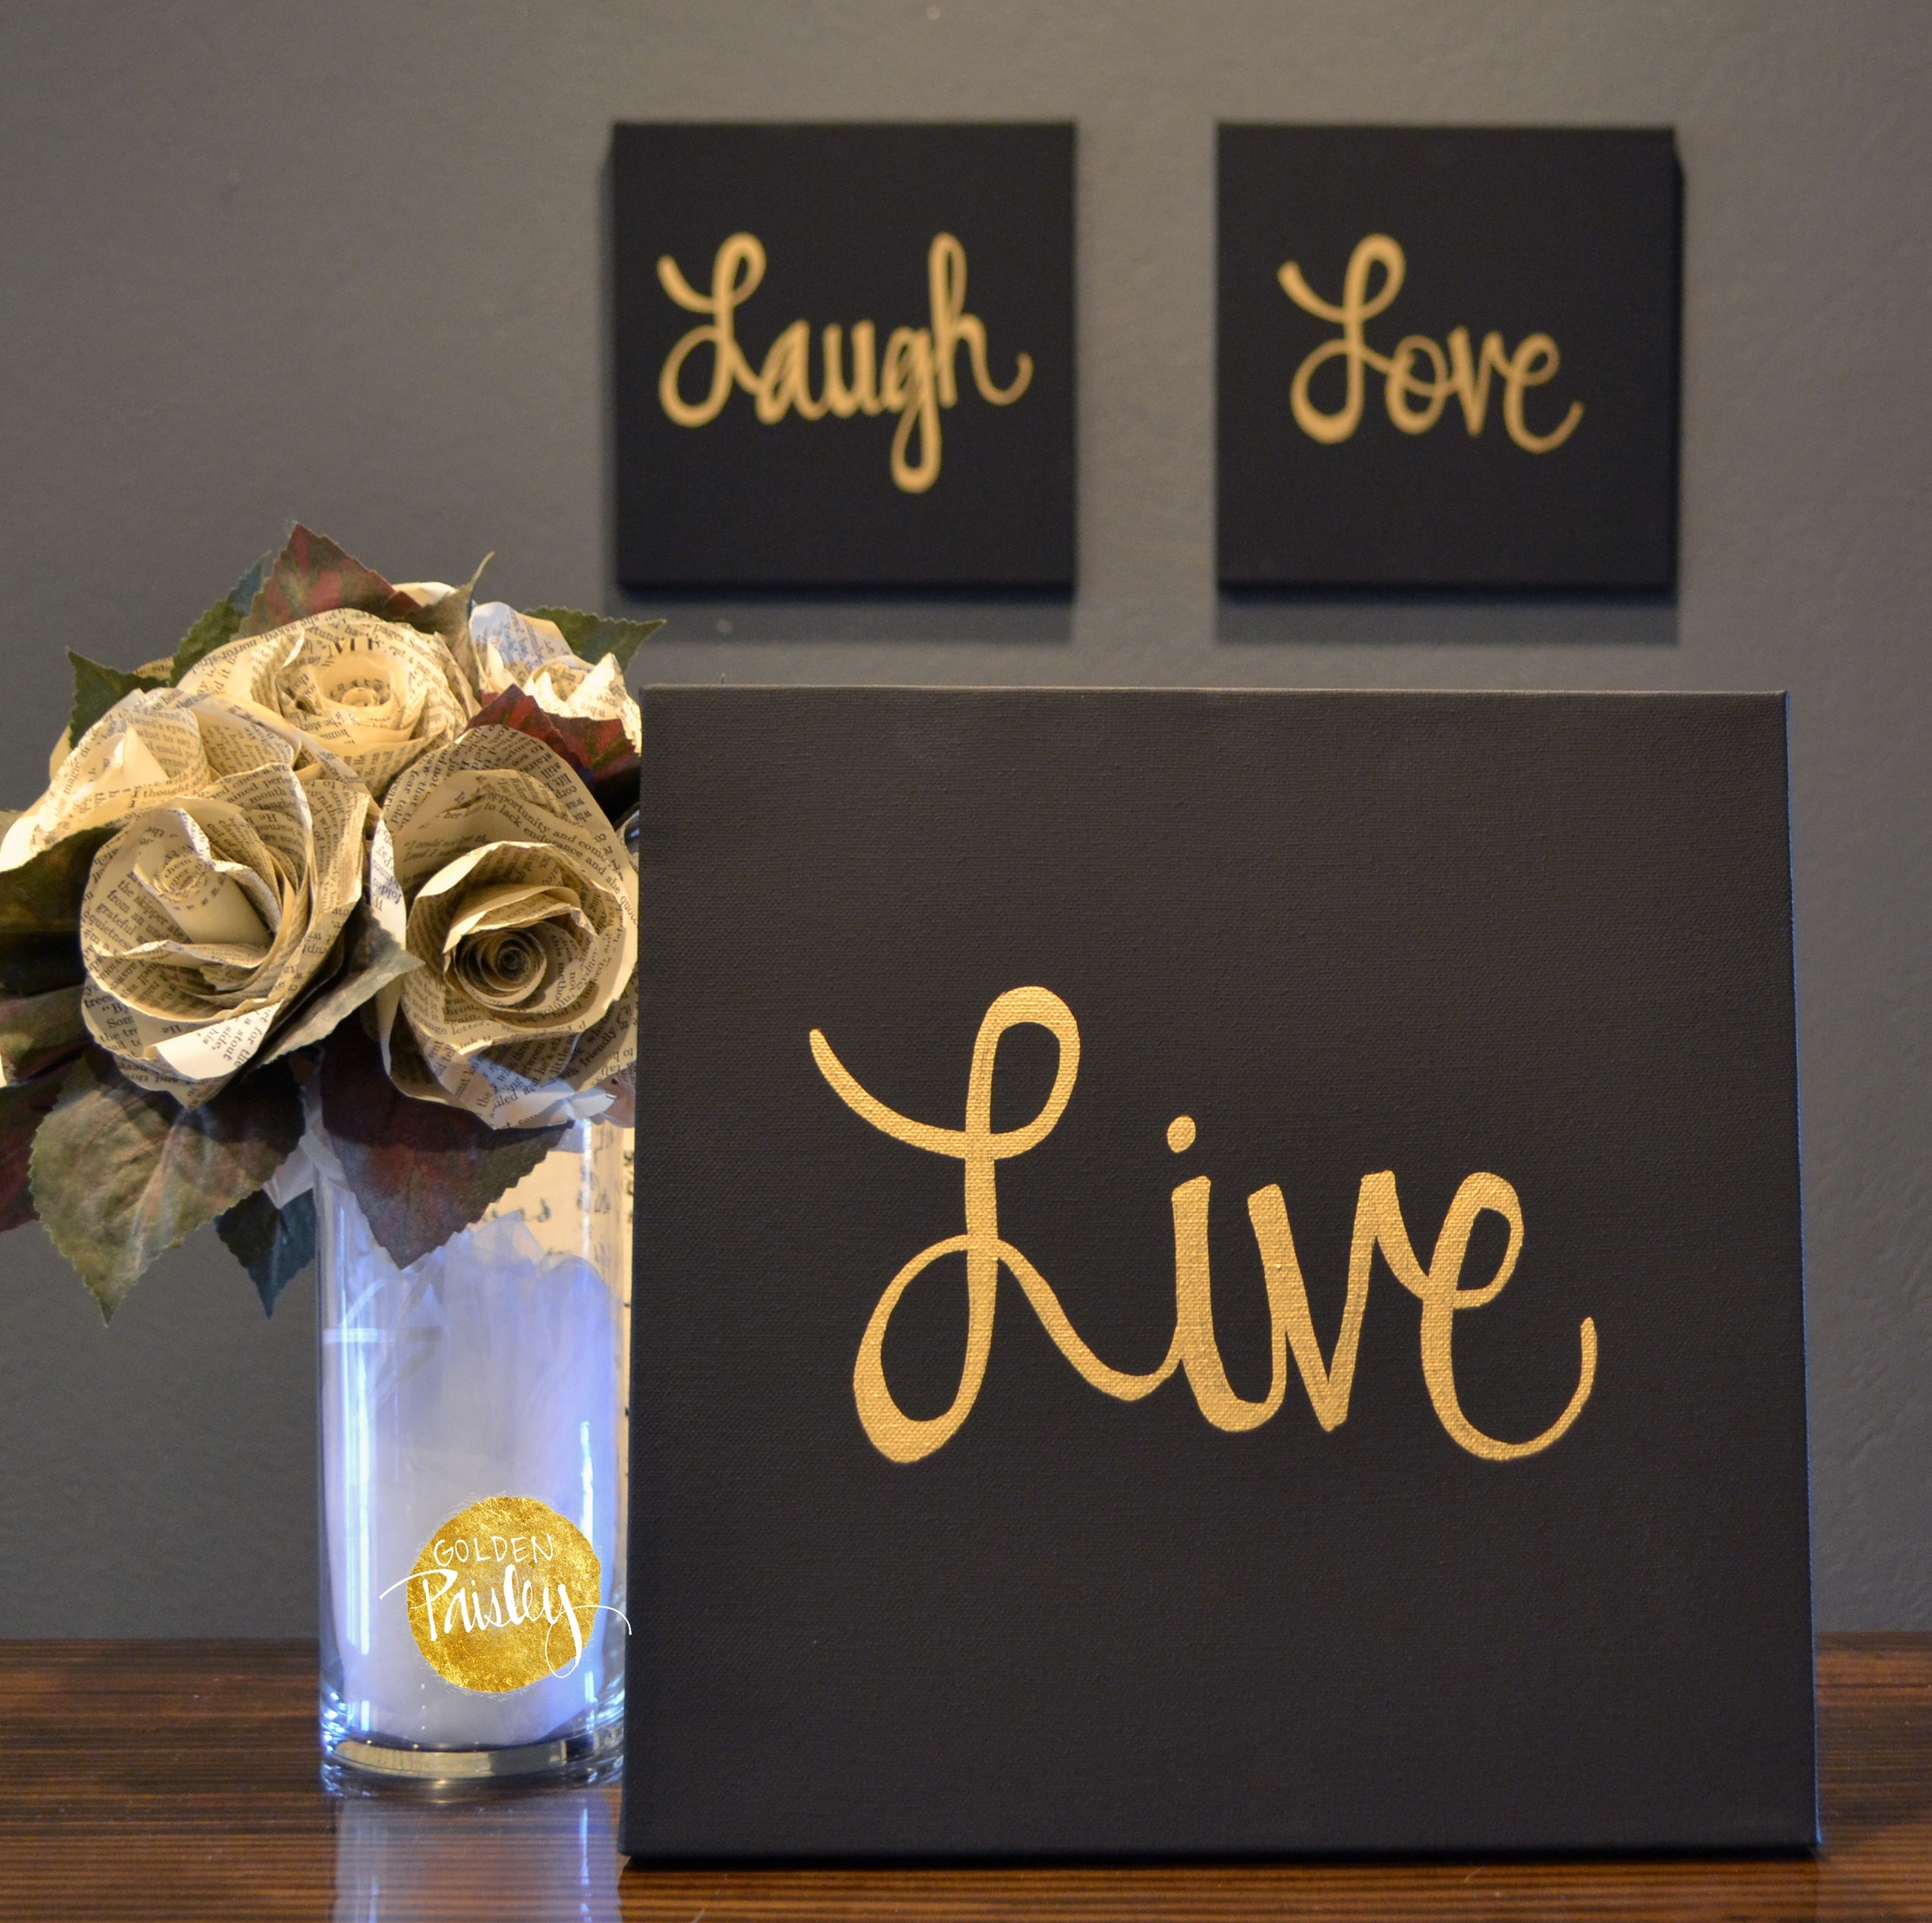 Live Laugh Love Black & Gold 3 Piece Wall Decor Set Regarding Newest Black And Gold Wall Art (View 2 of 20)